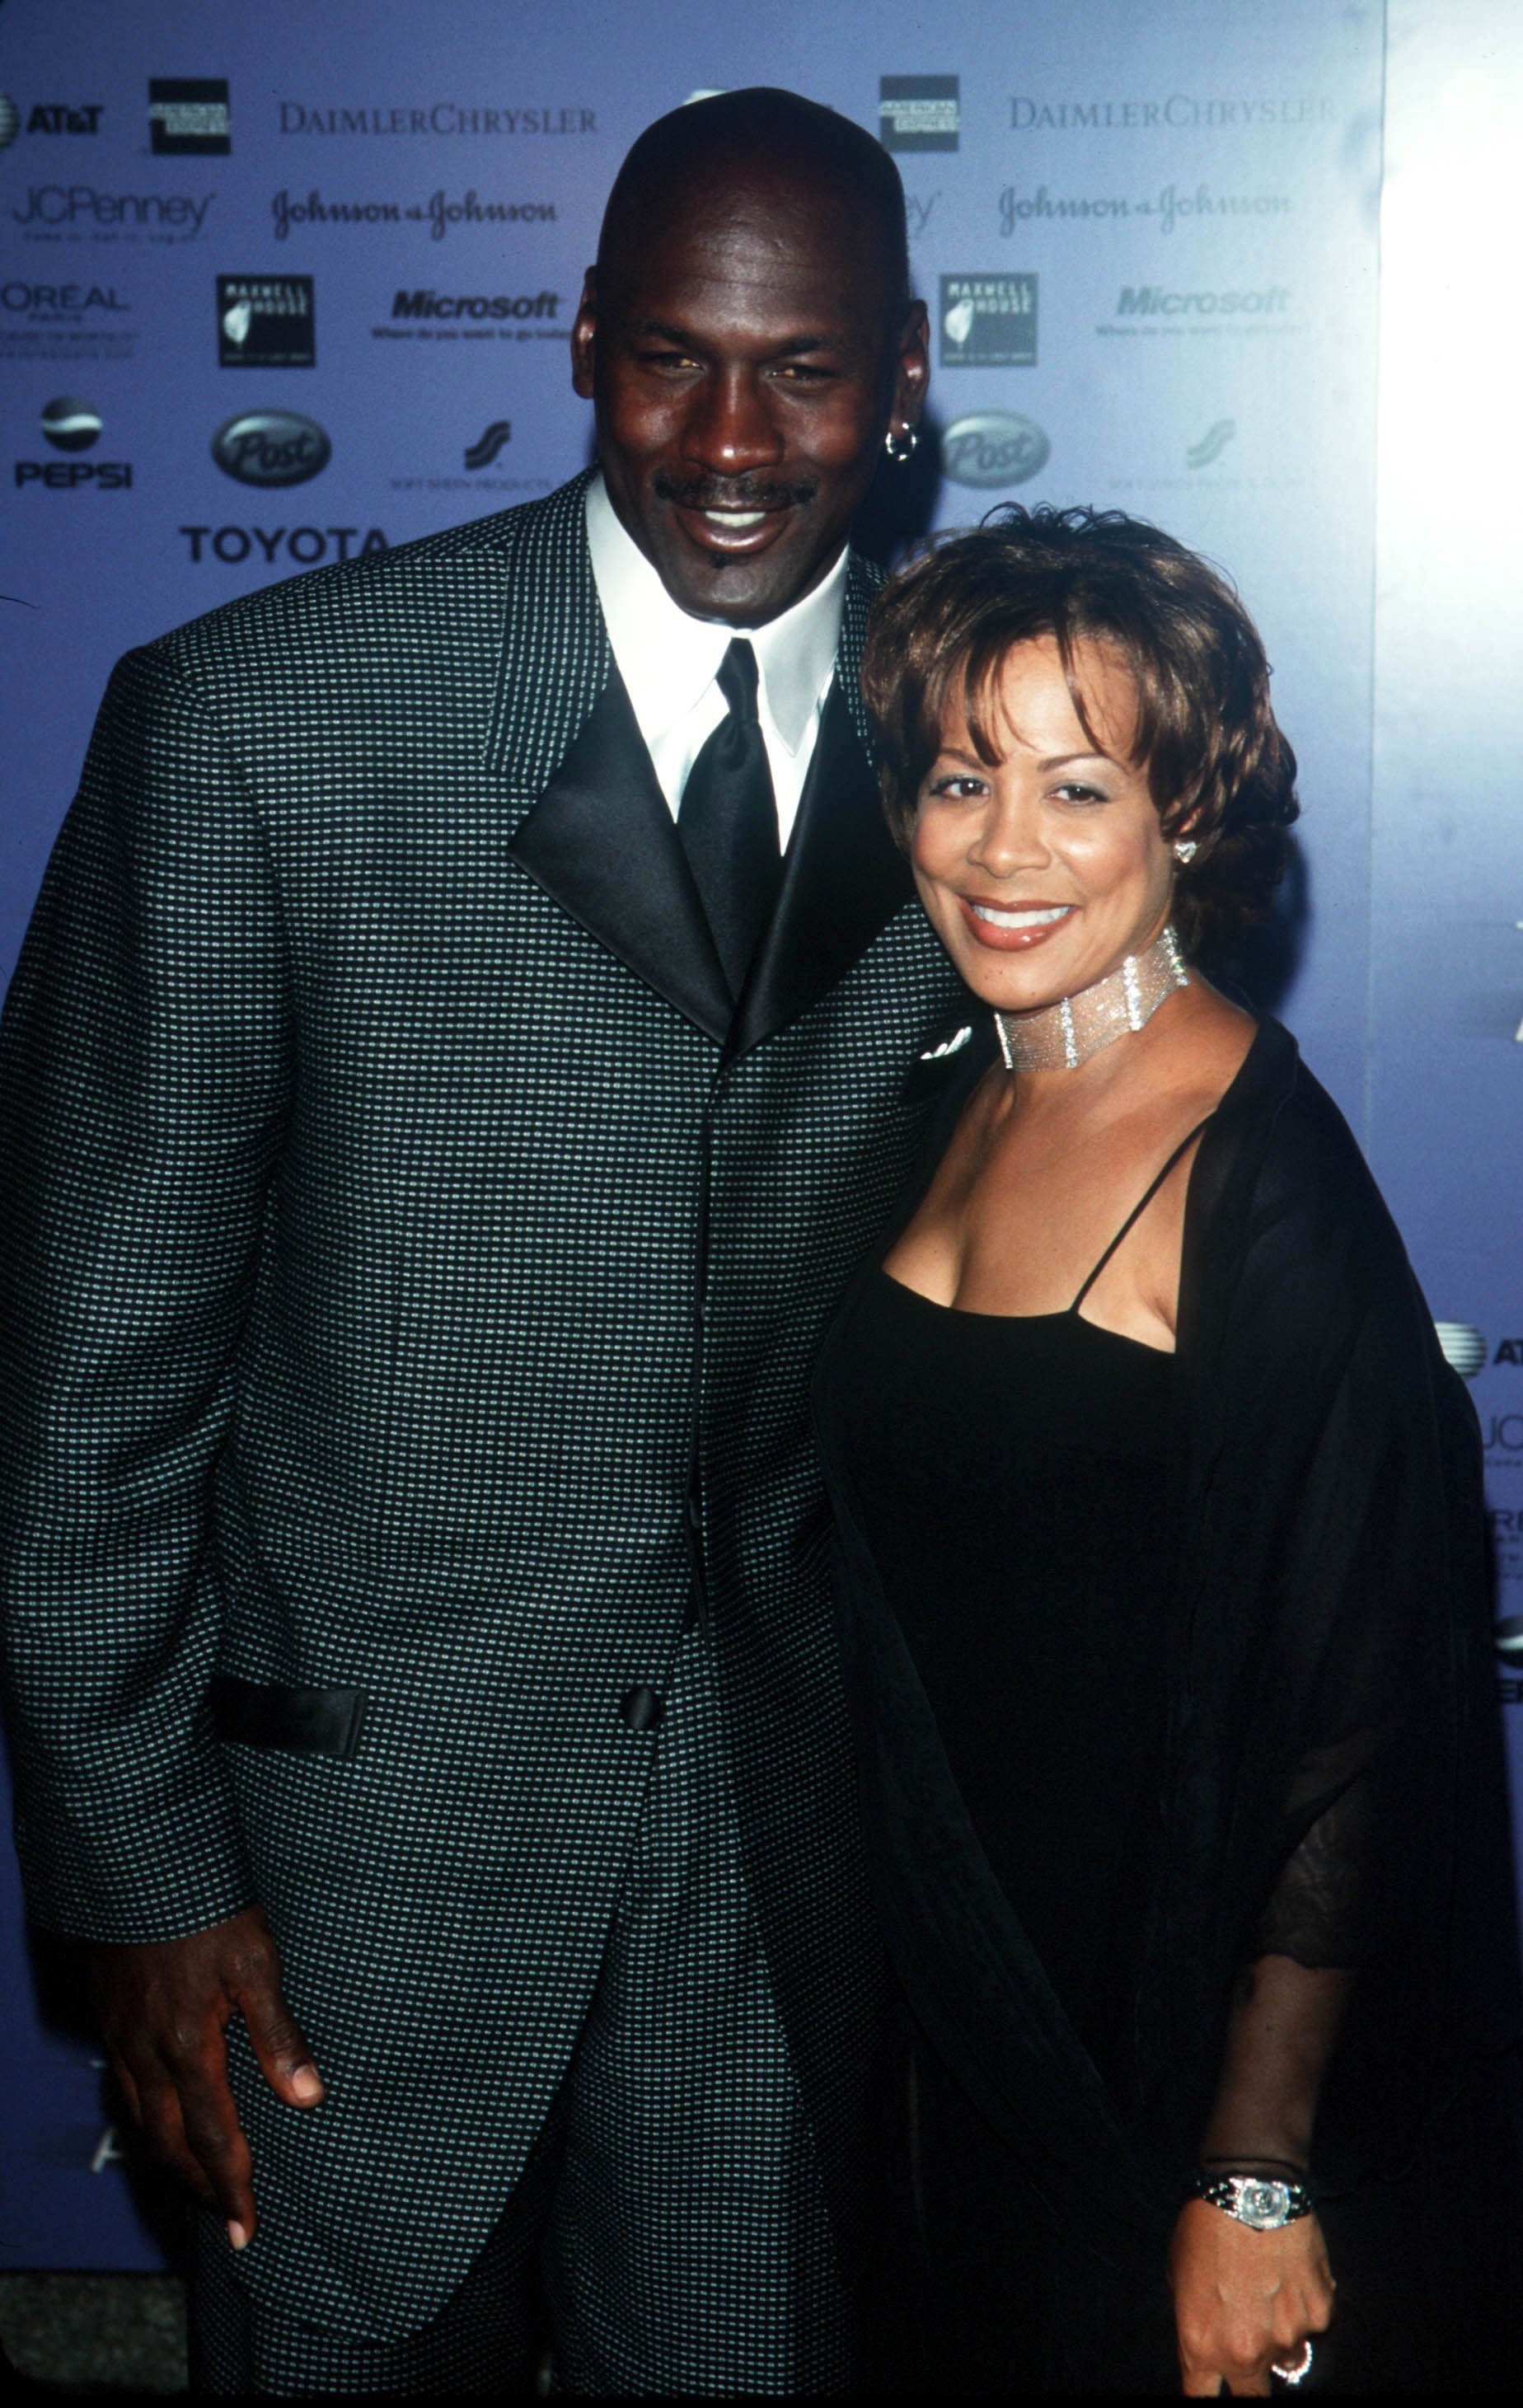 Michael and Juanita Jordan. I Image: Getty Images.